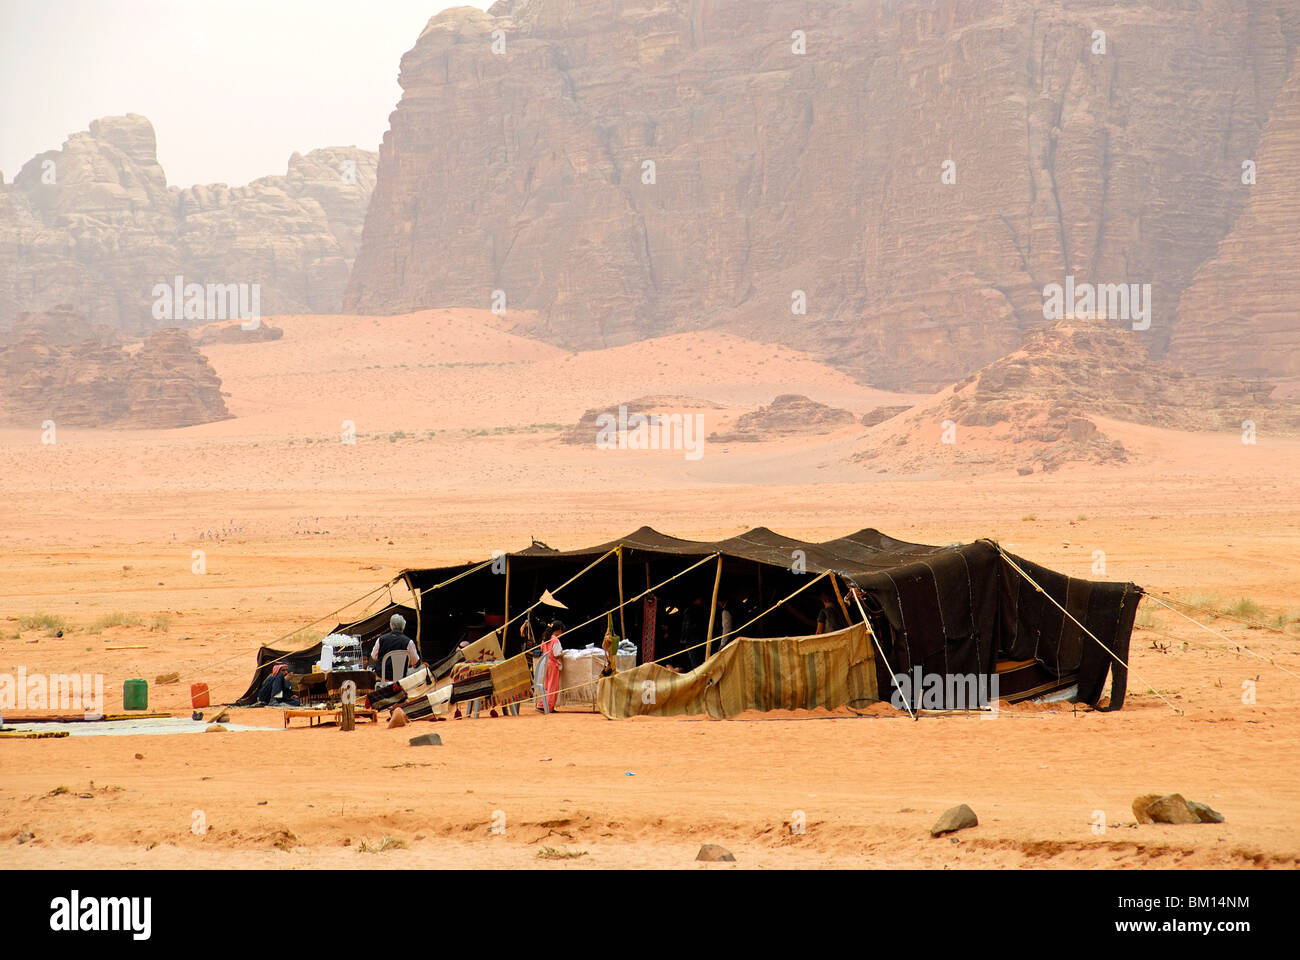 bedouin of the middle east The middle east at this period was a region of religious change new mystery religions such as mithraism were spreading in the region above all, christianity was born in judaea and galillee, and began spreading around the middle east from after 30 ce.